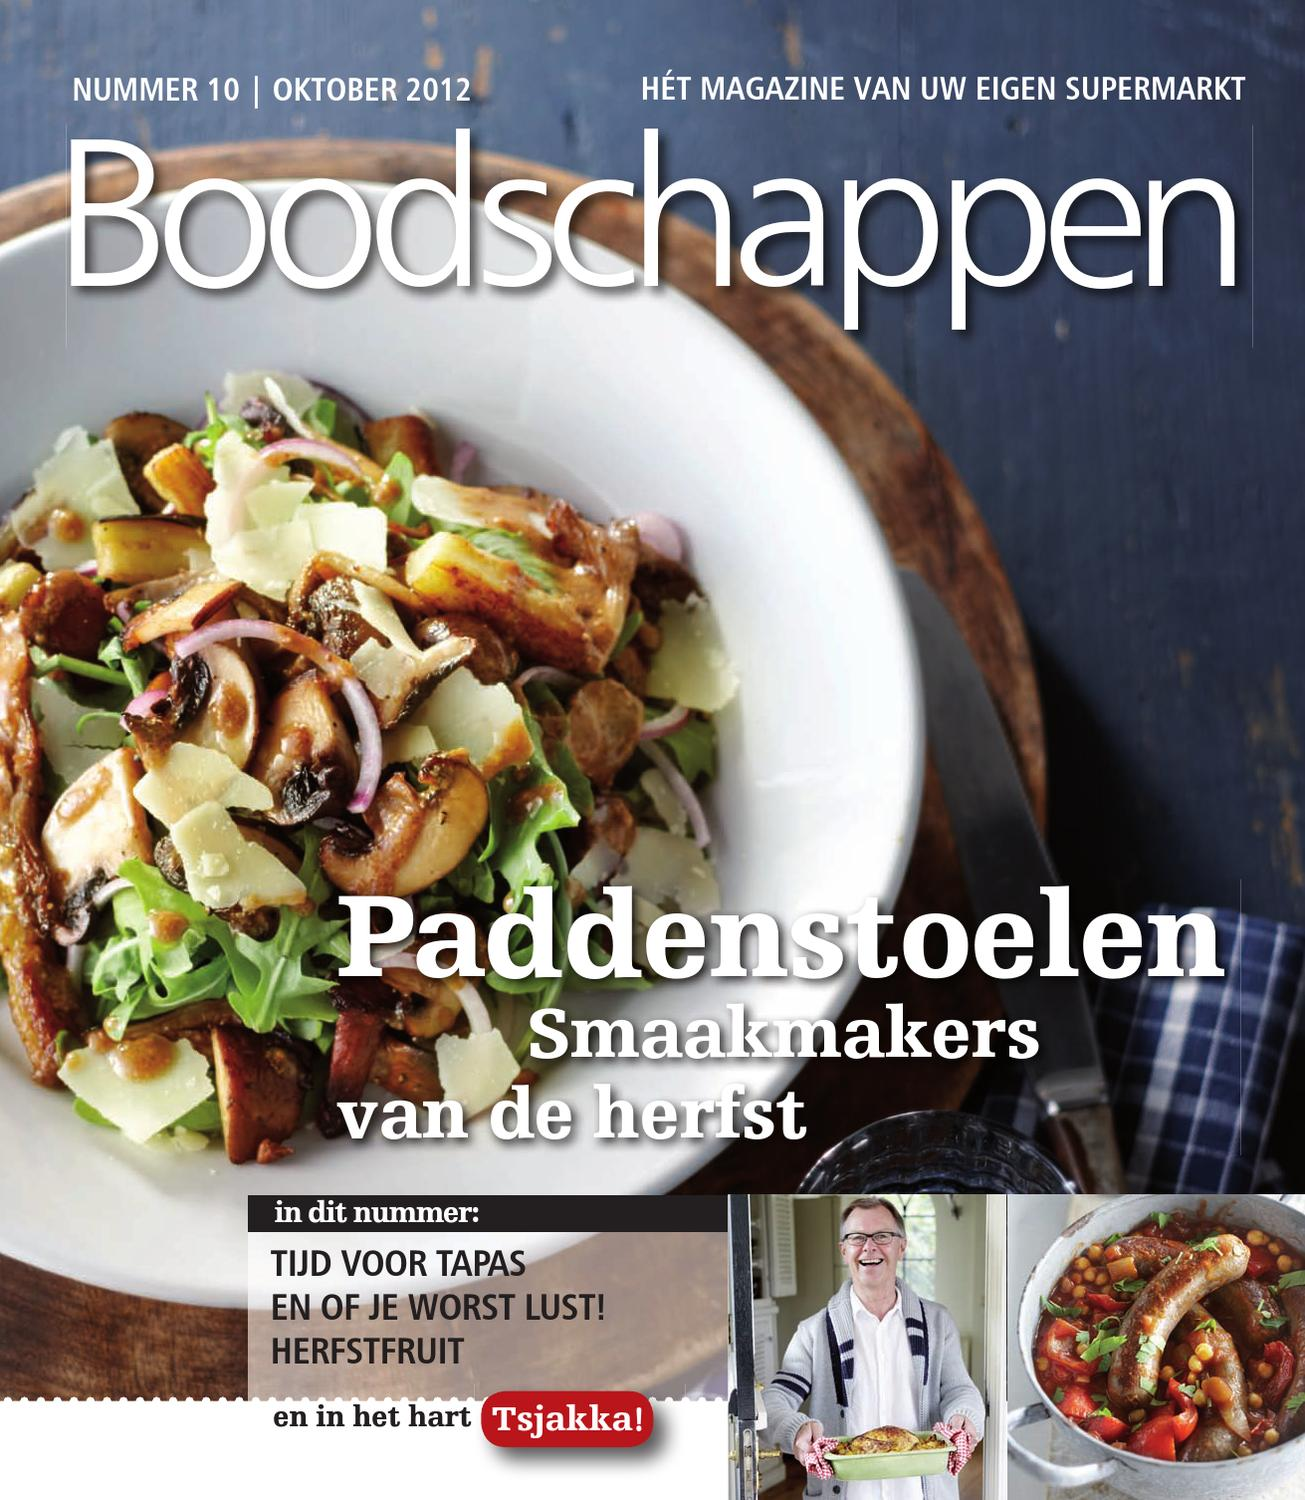 Boodschappen 11 by Indicia - issuu